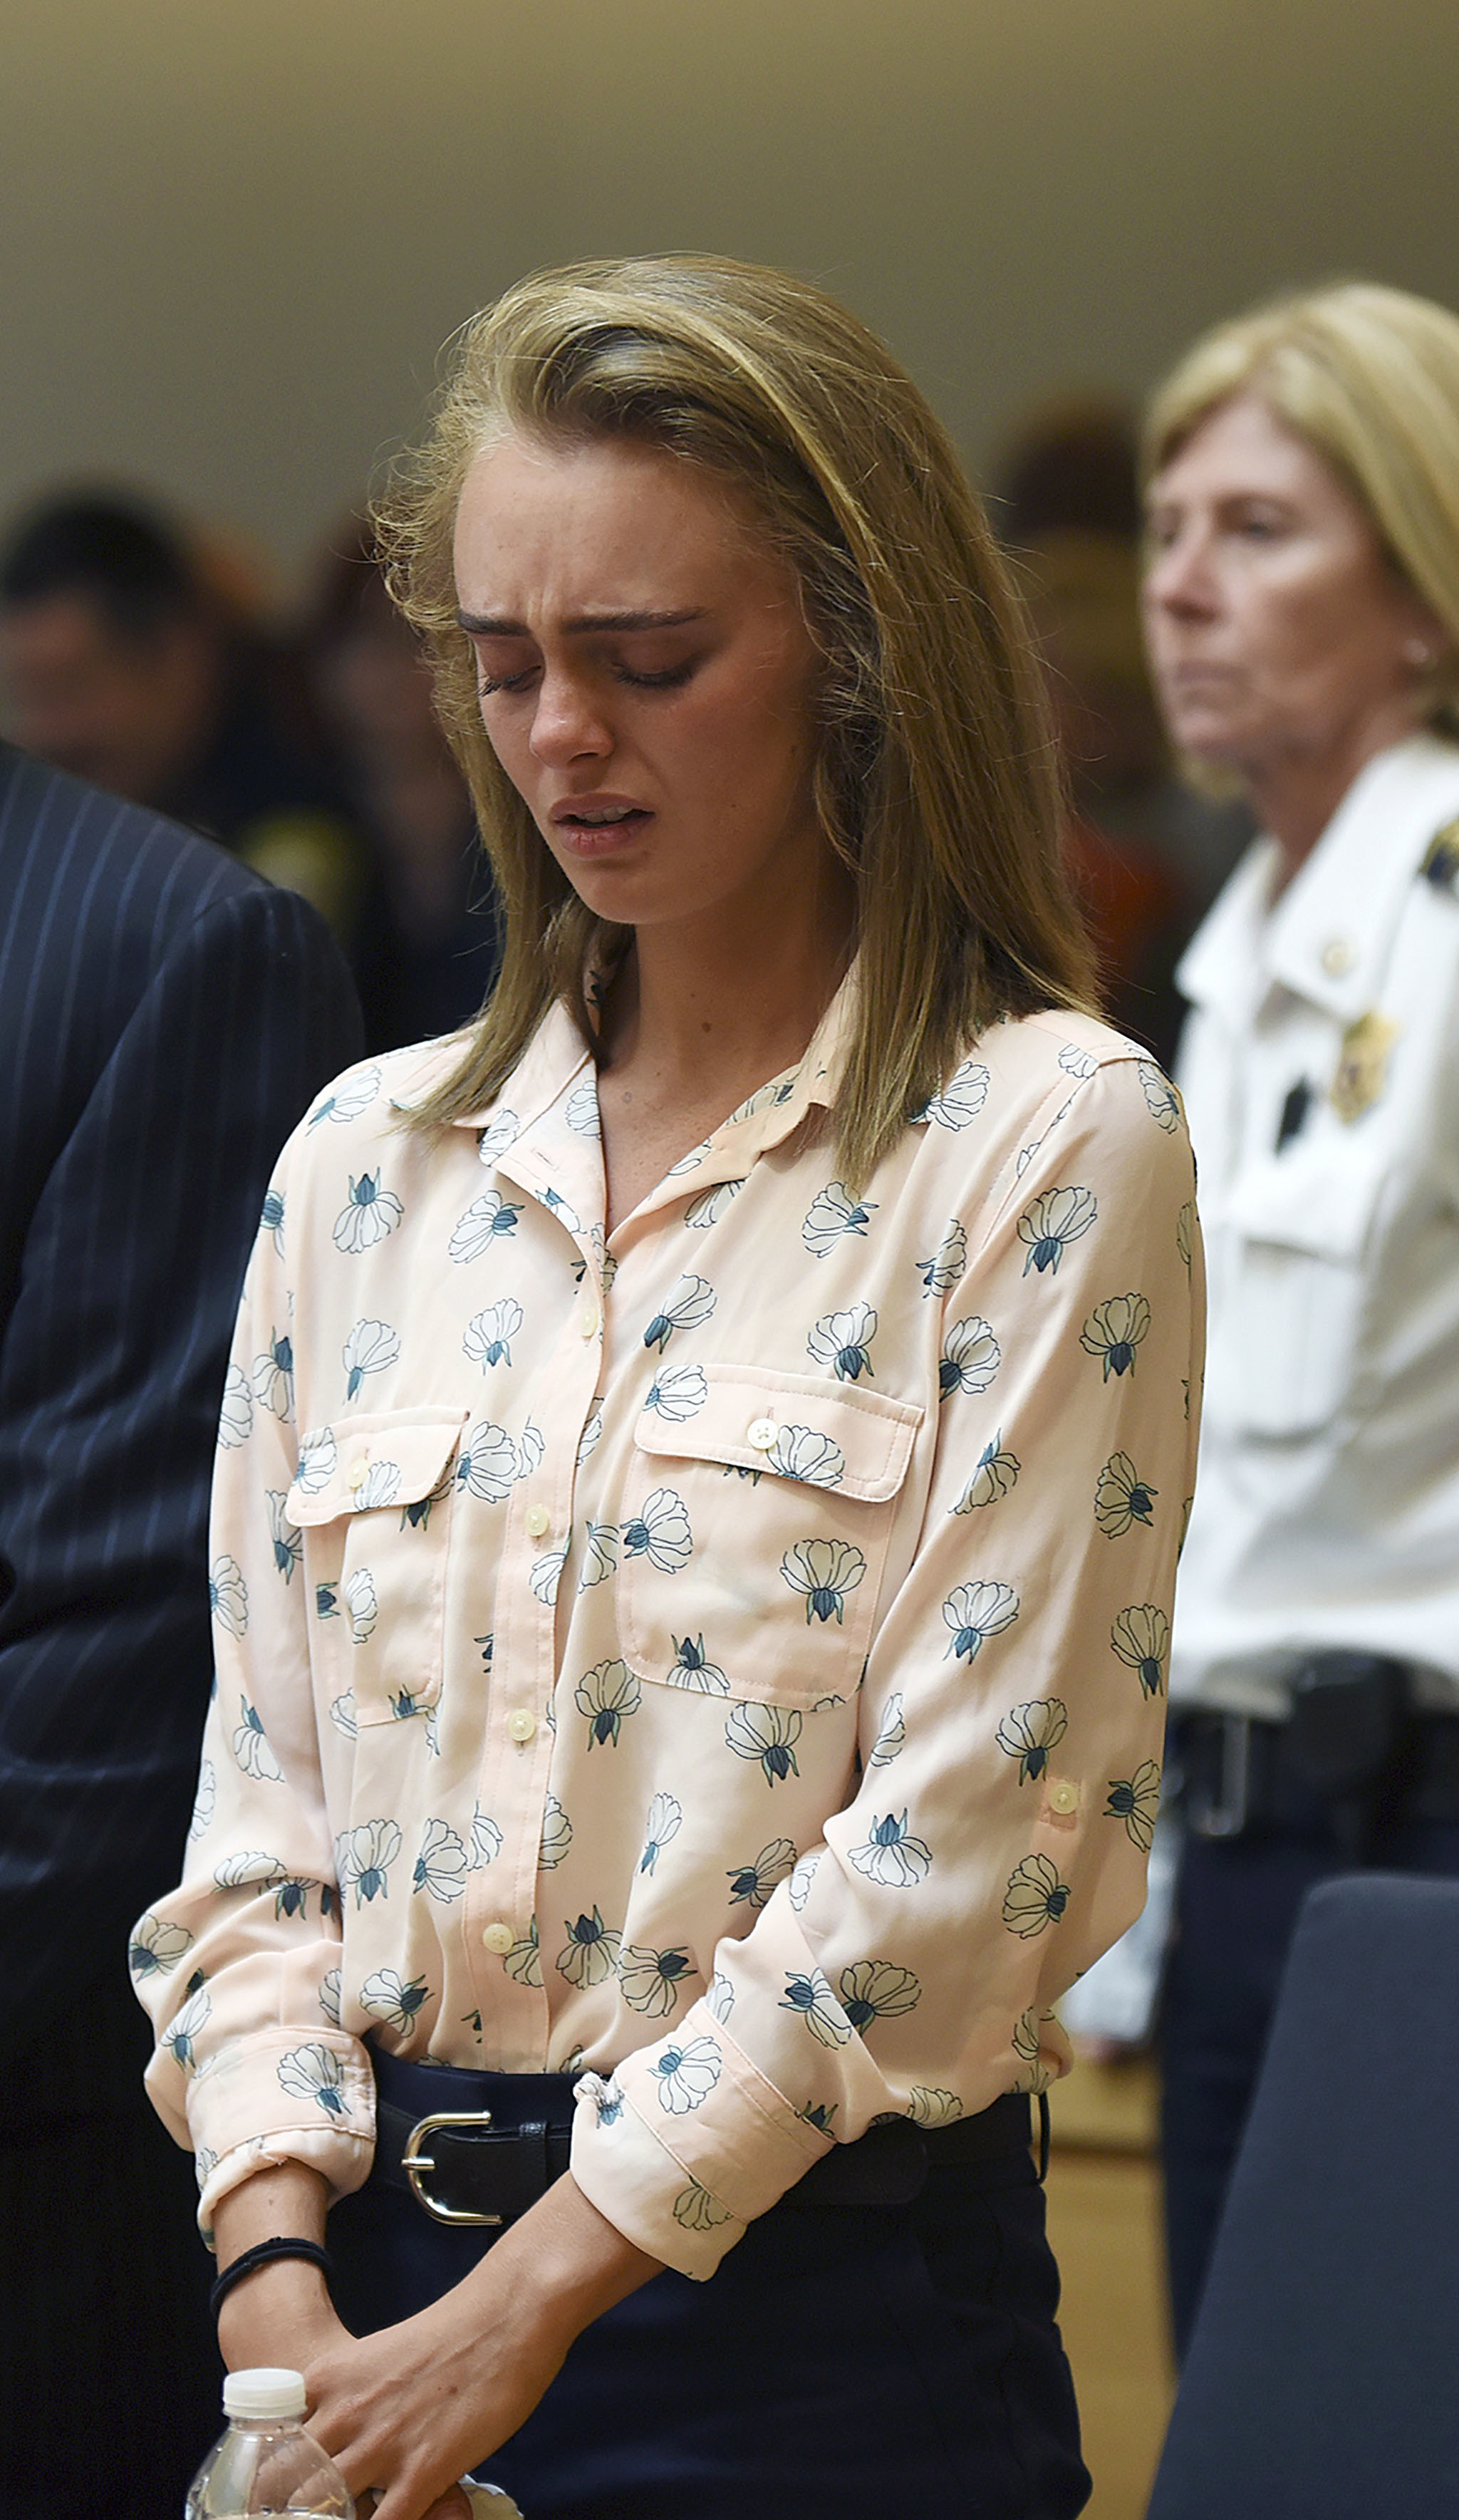 Michelle Carter cried after being found guilty of involuntary manslaughter. Credit: PA